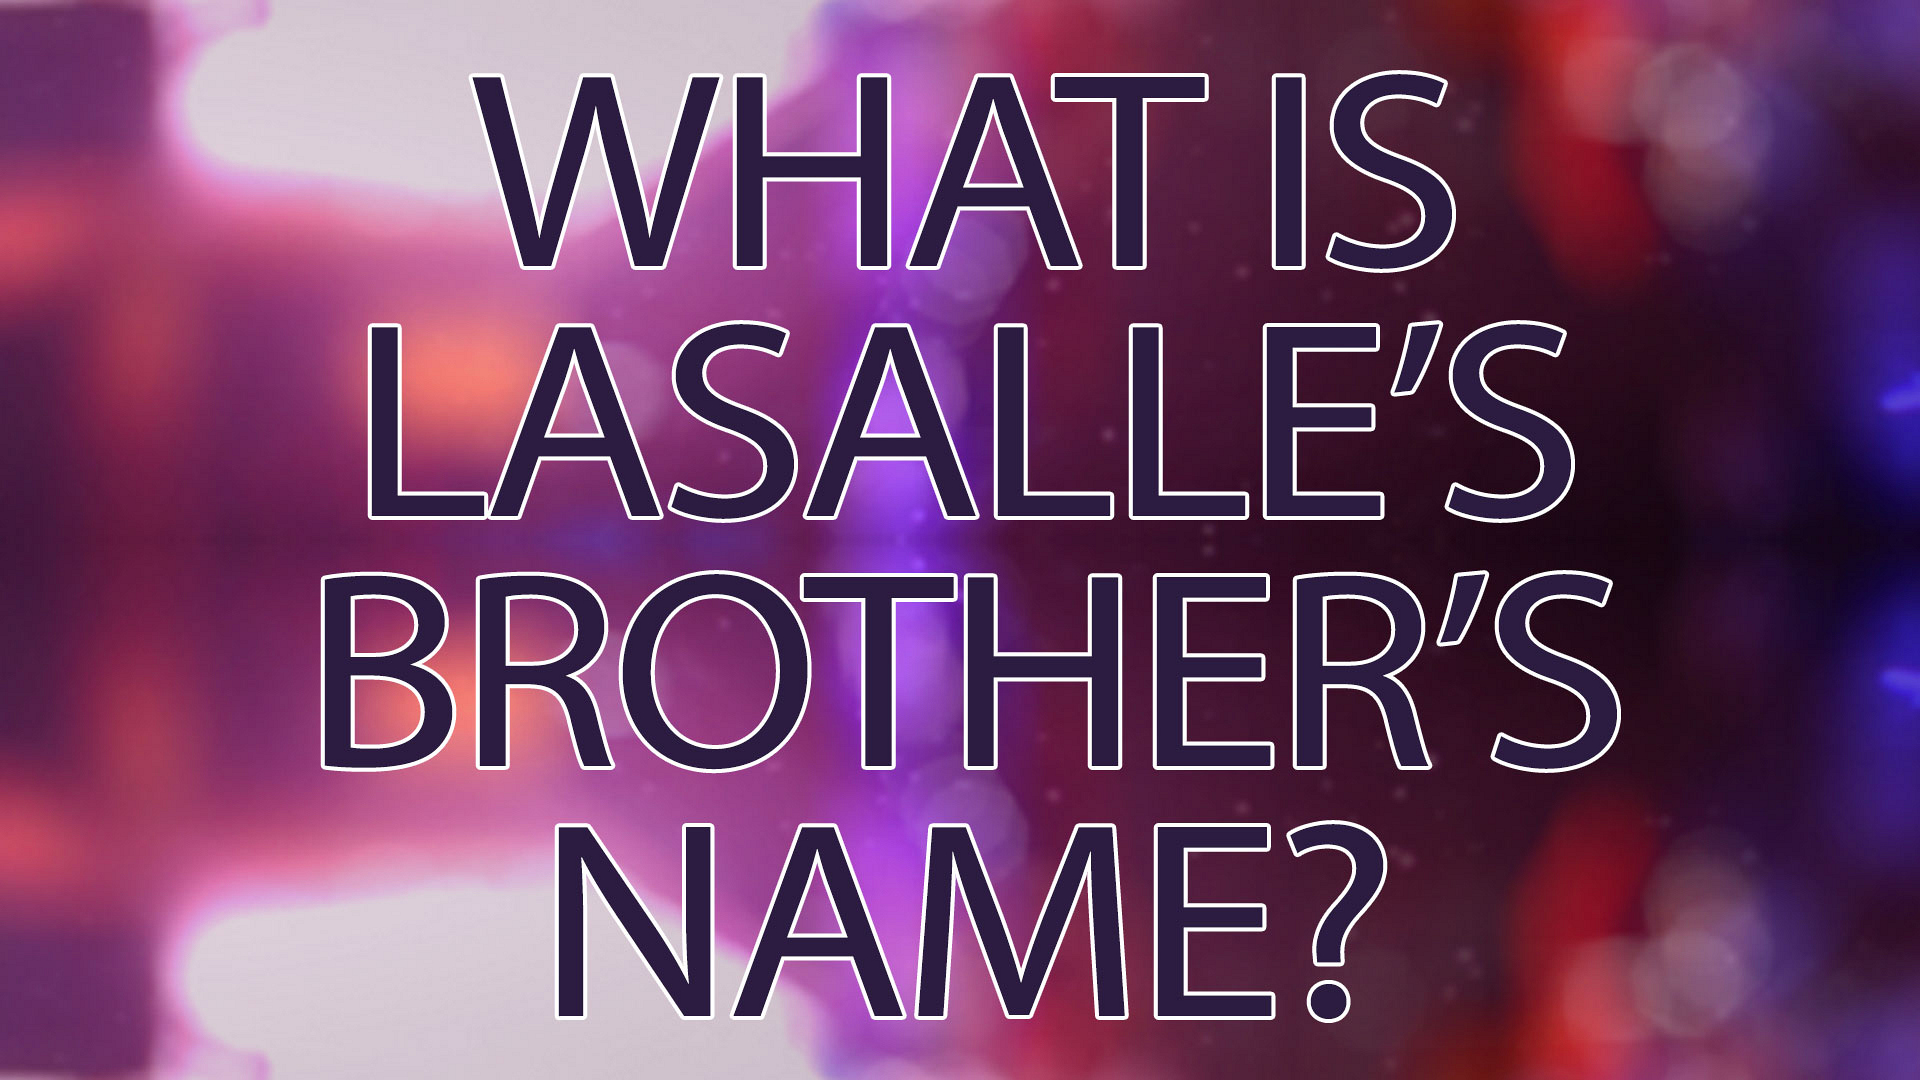 What is Lasalle's brother's name?